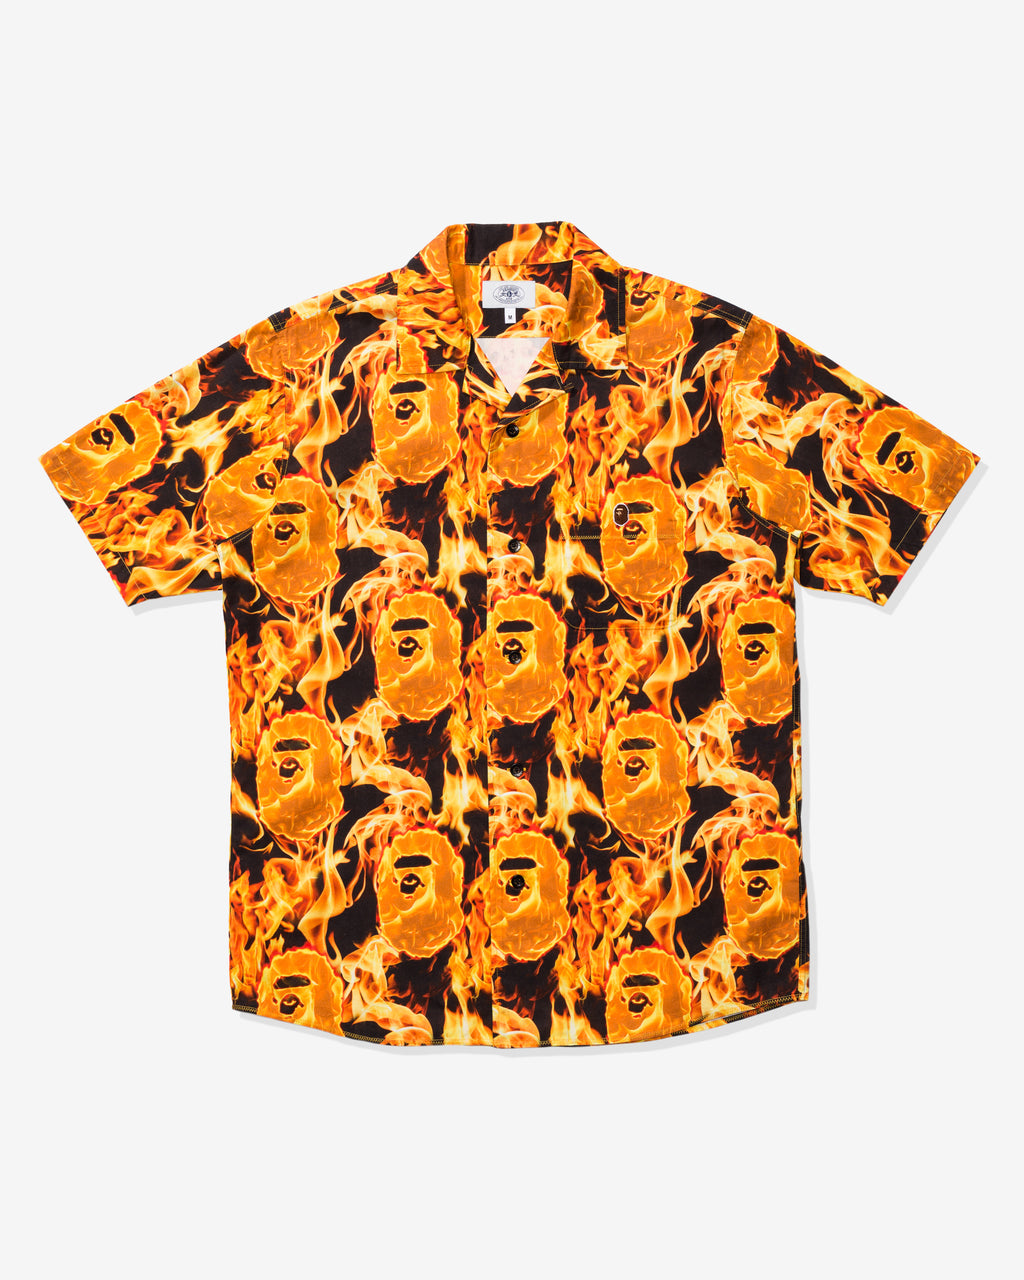 BAPE FLAME OPEN COLLAR SHIRT - ORANGE